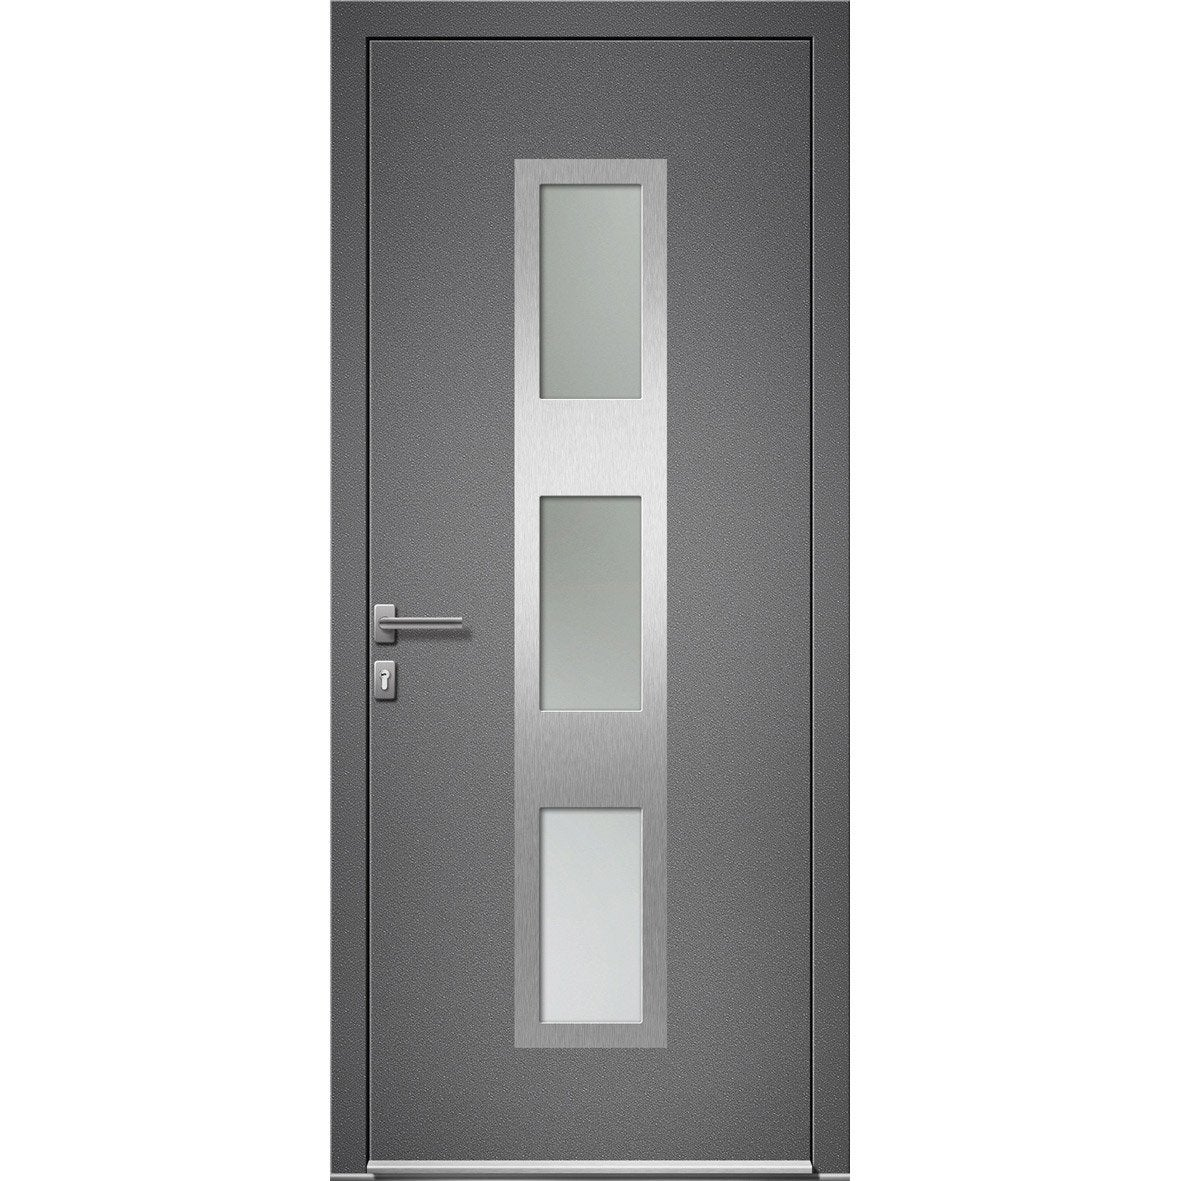 Porte d 39 entr e sur mesure en aluminium halifax excellence for Porte de salon leroy merlin